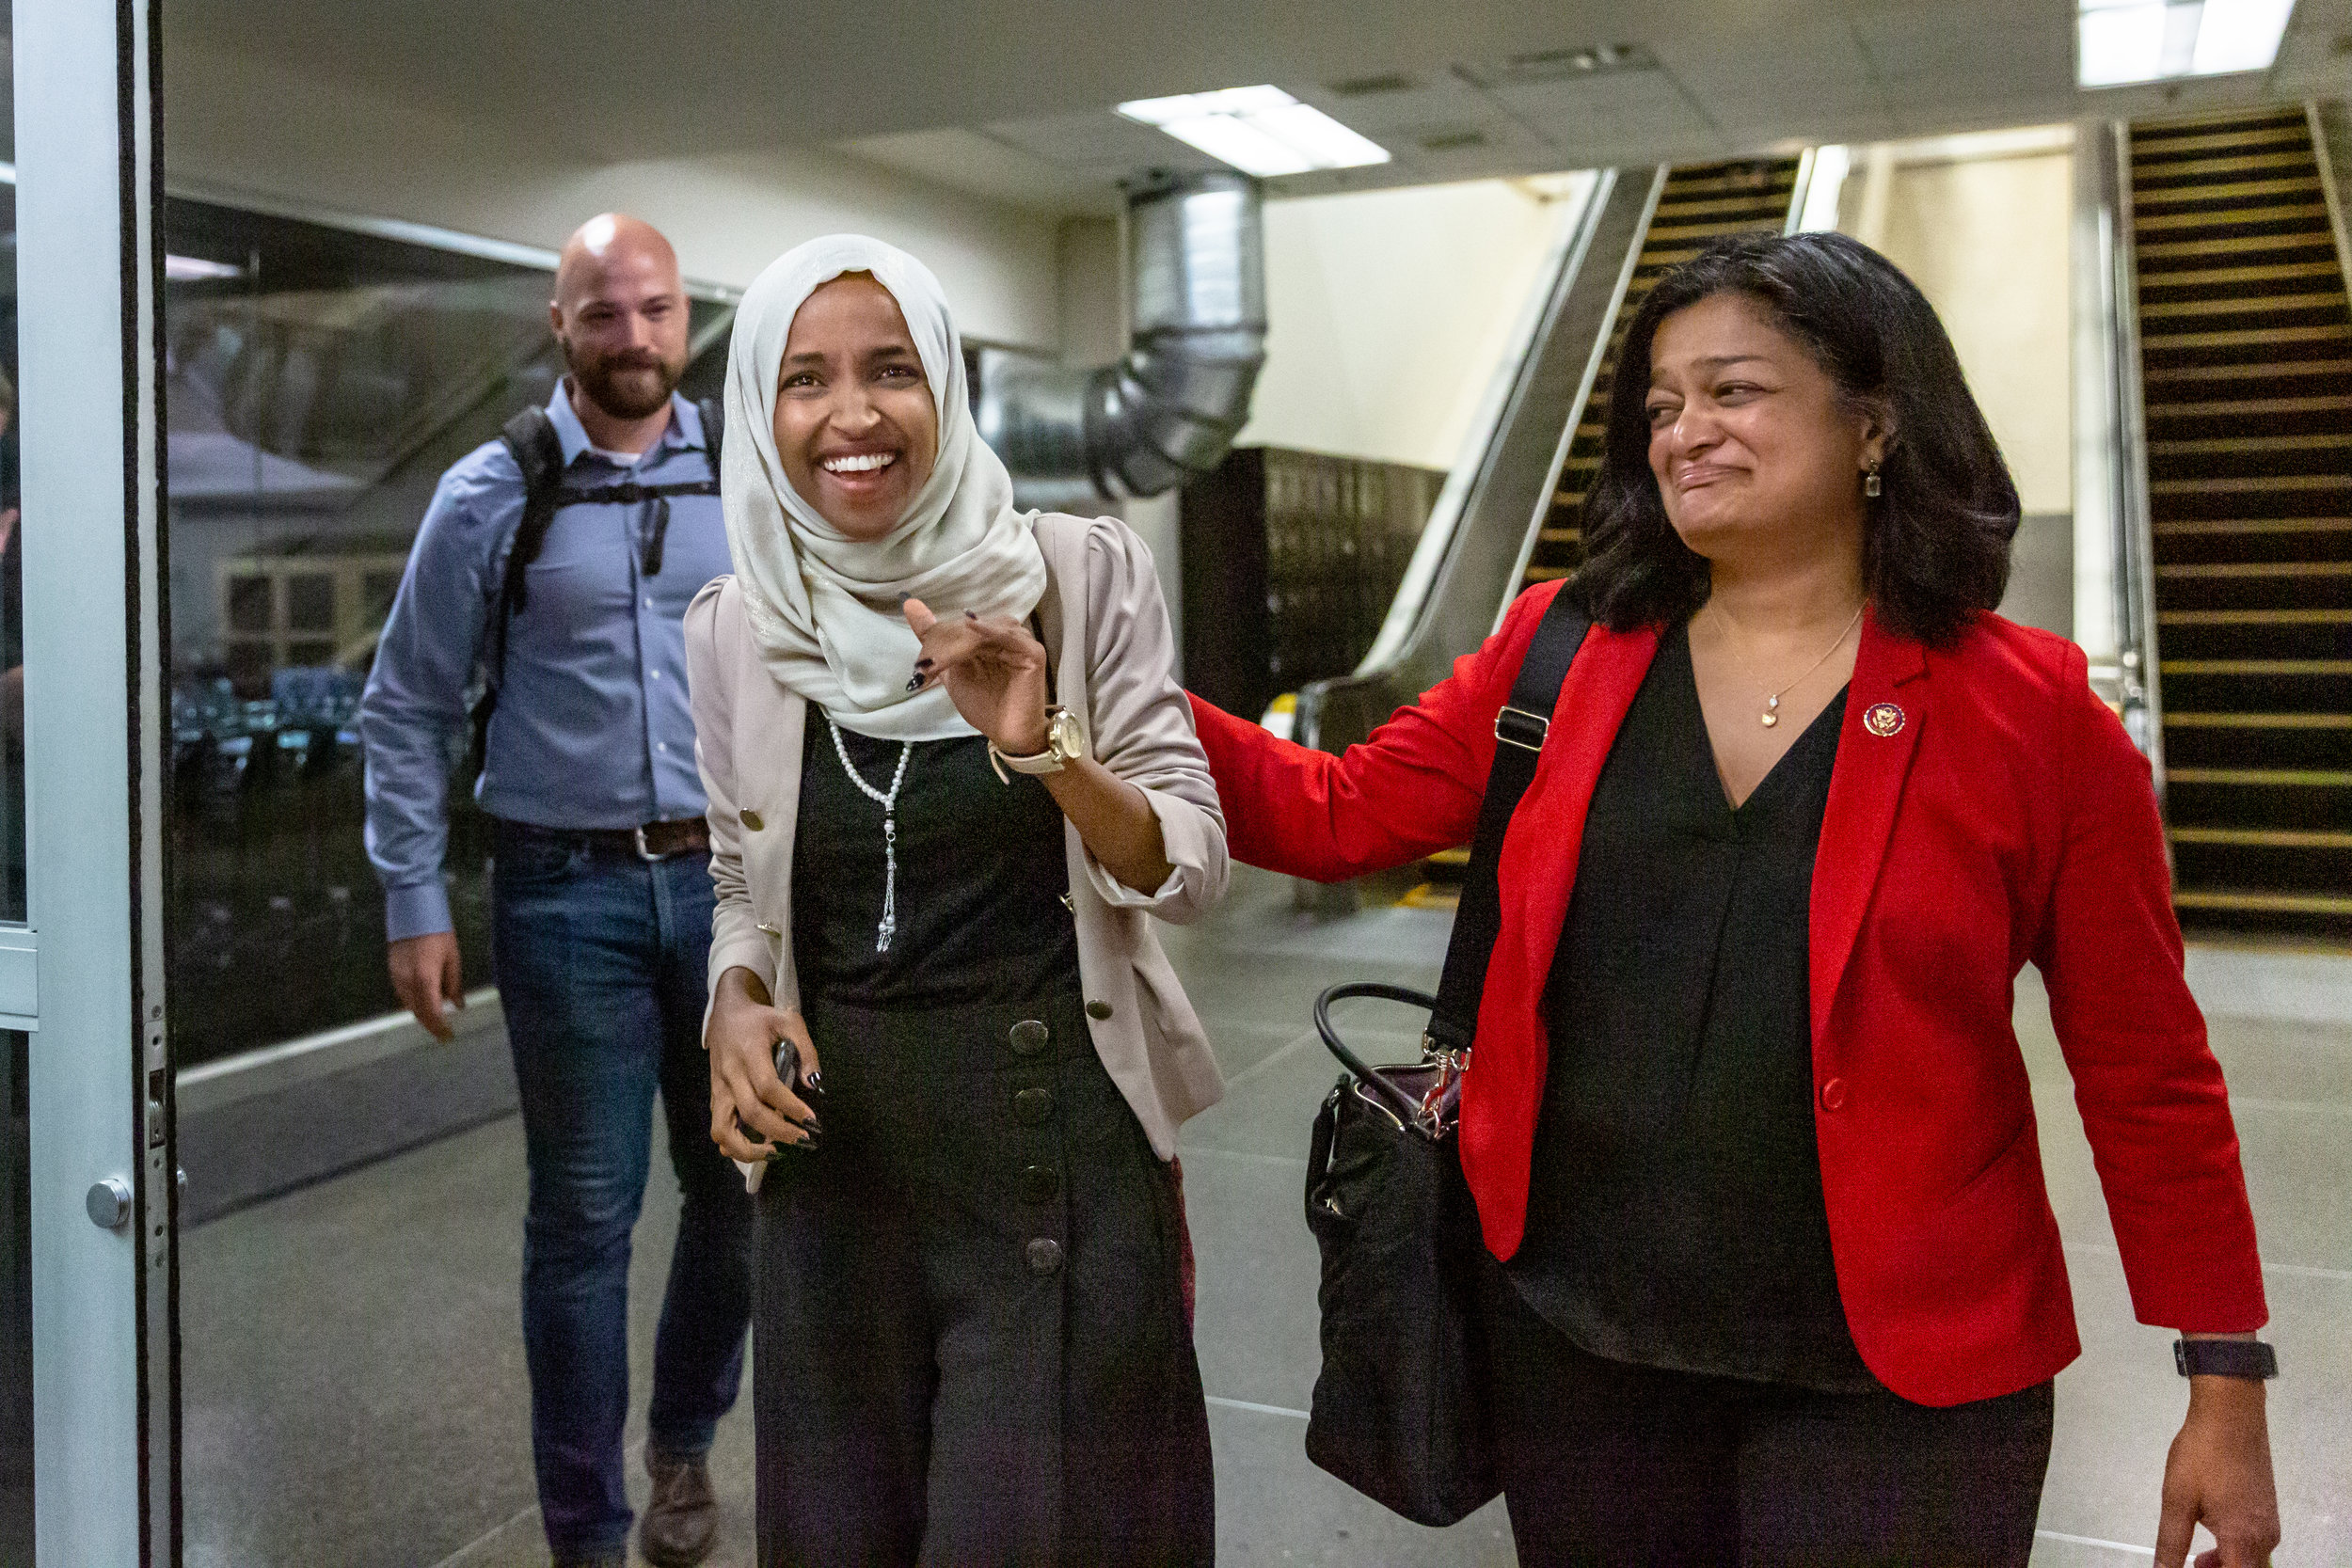 Representative Ilhan Omar reacts to supporters who came to welcome her home at MSP Airport.